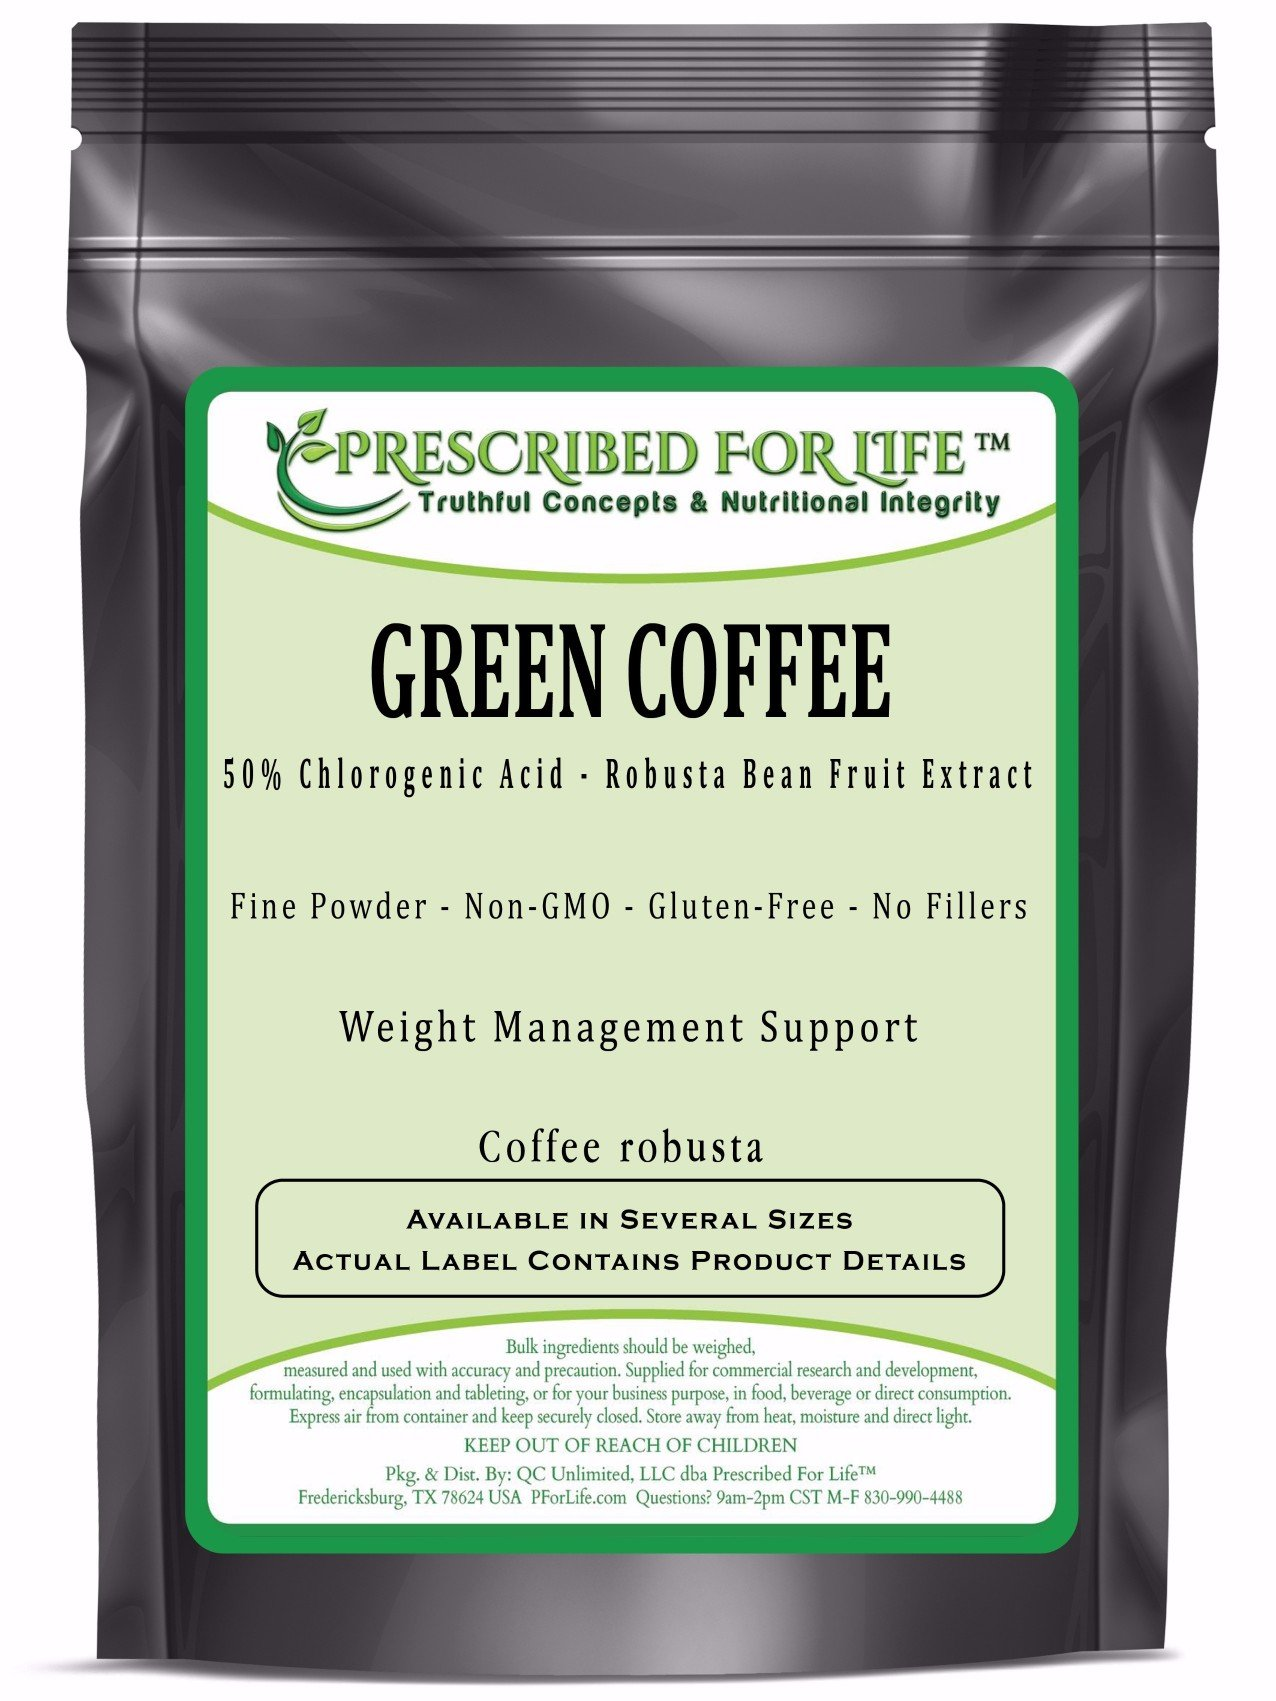 Green Coffee - 50% Chlorogenic Acid - Natural Robusta Bean Fruit Extract Powder (Coffea robusta), 12 oz